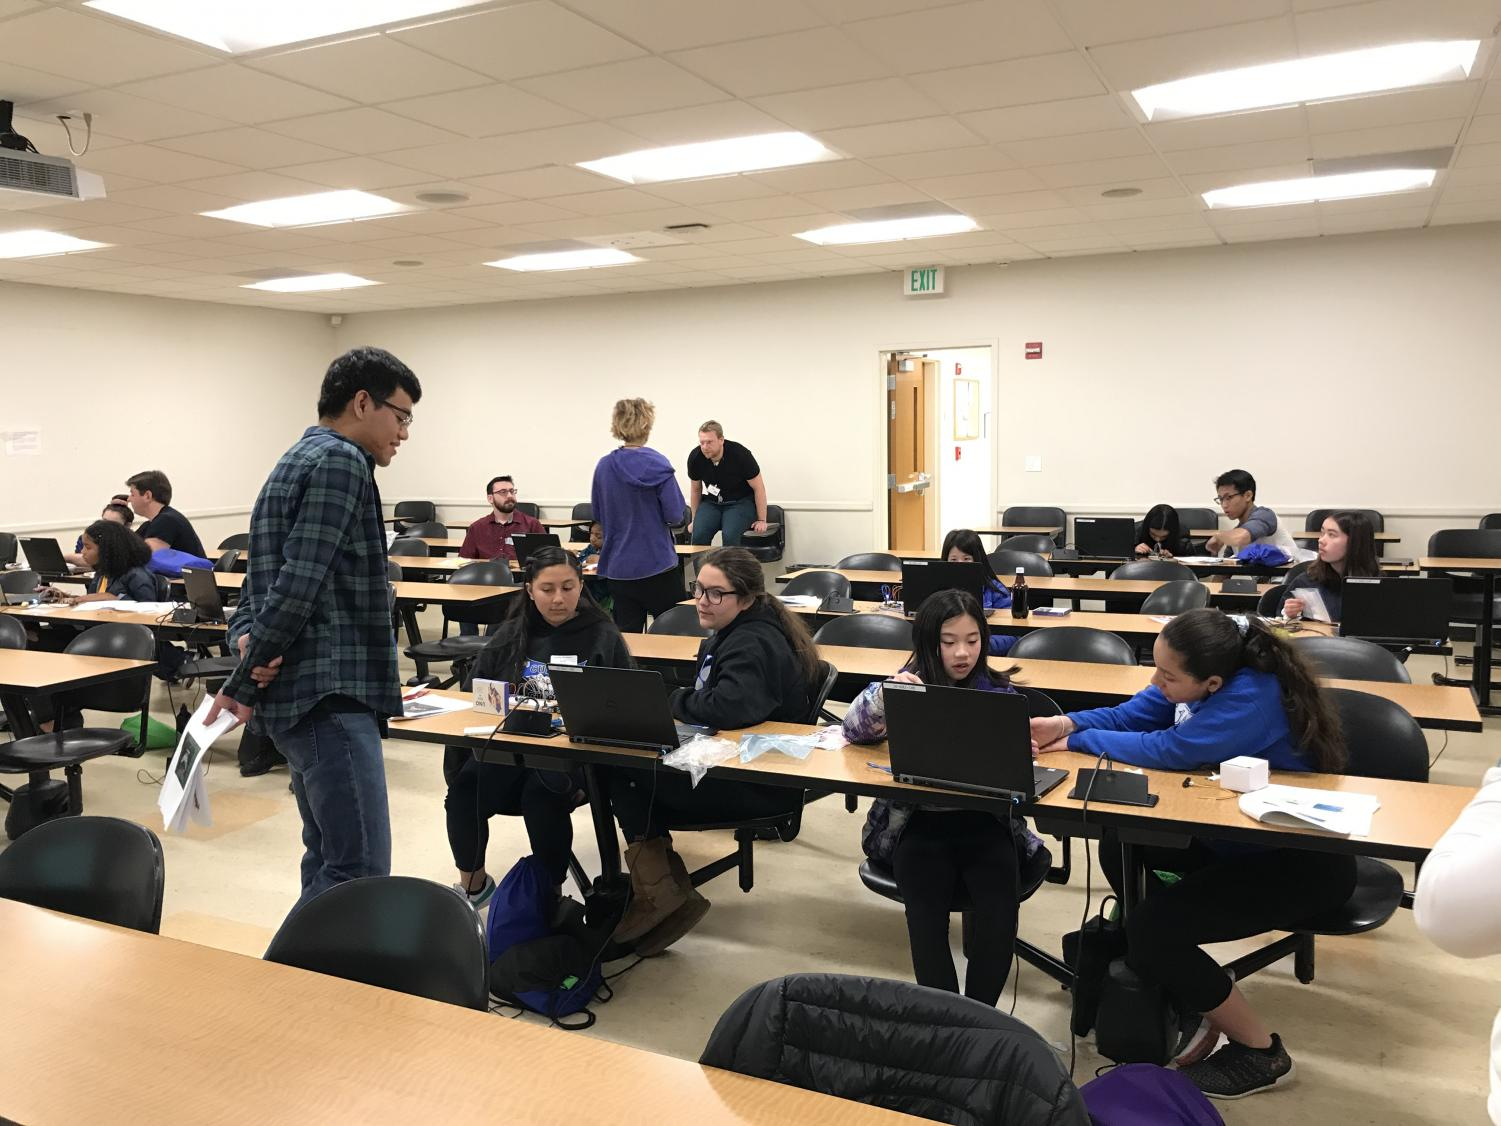 Students who attend the event use laptops to participate in a workshop.